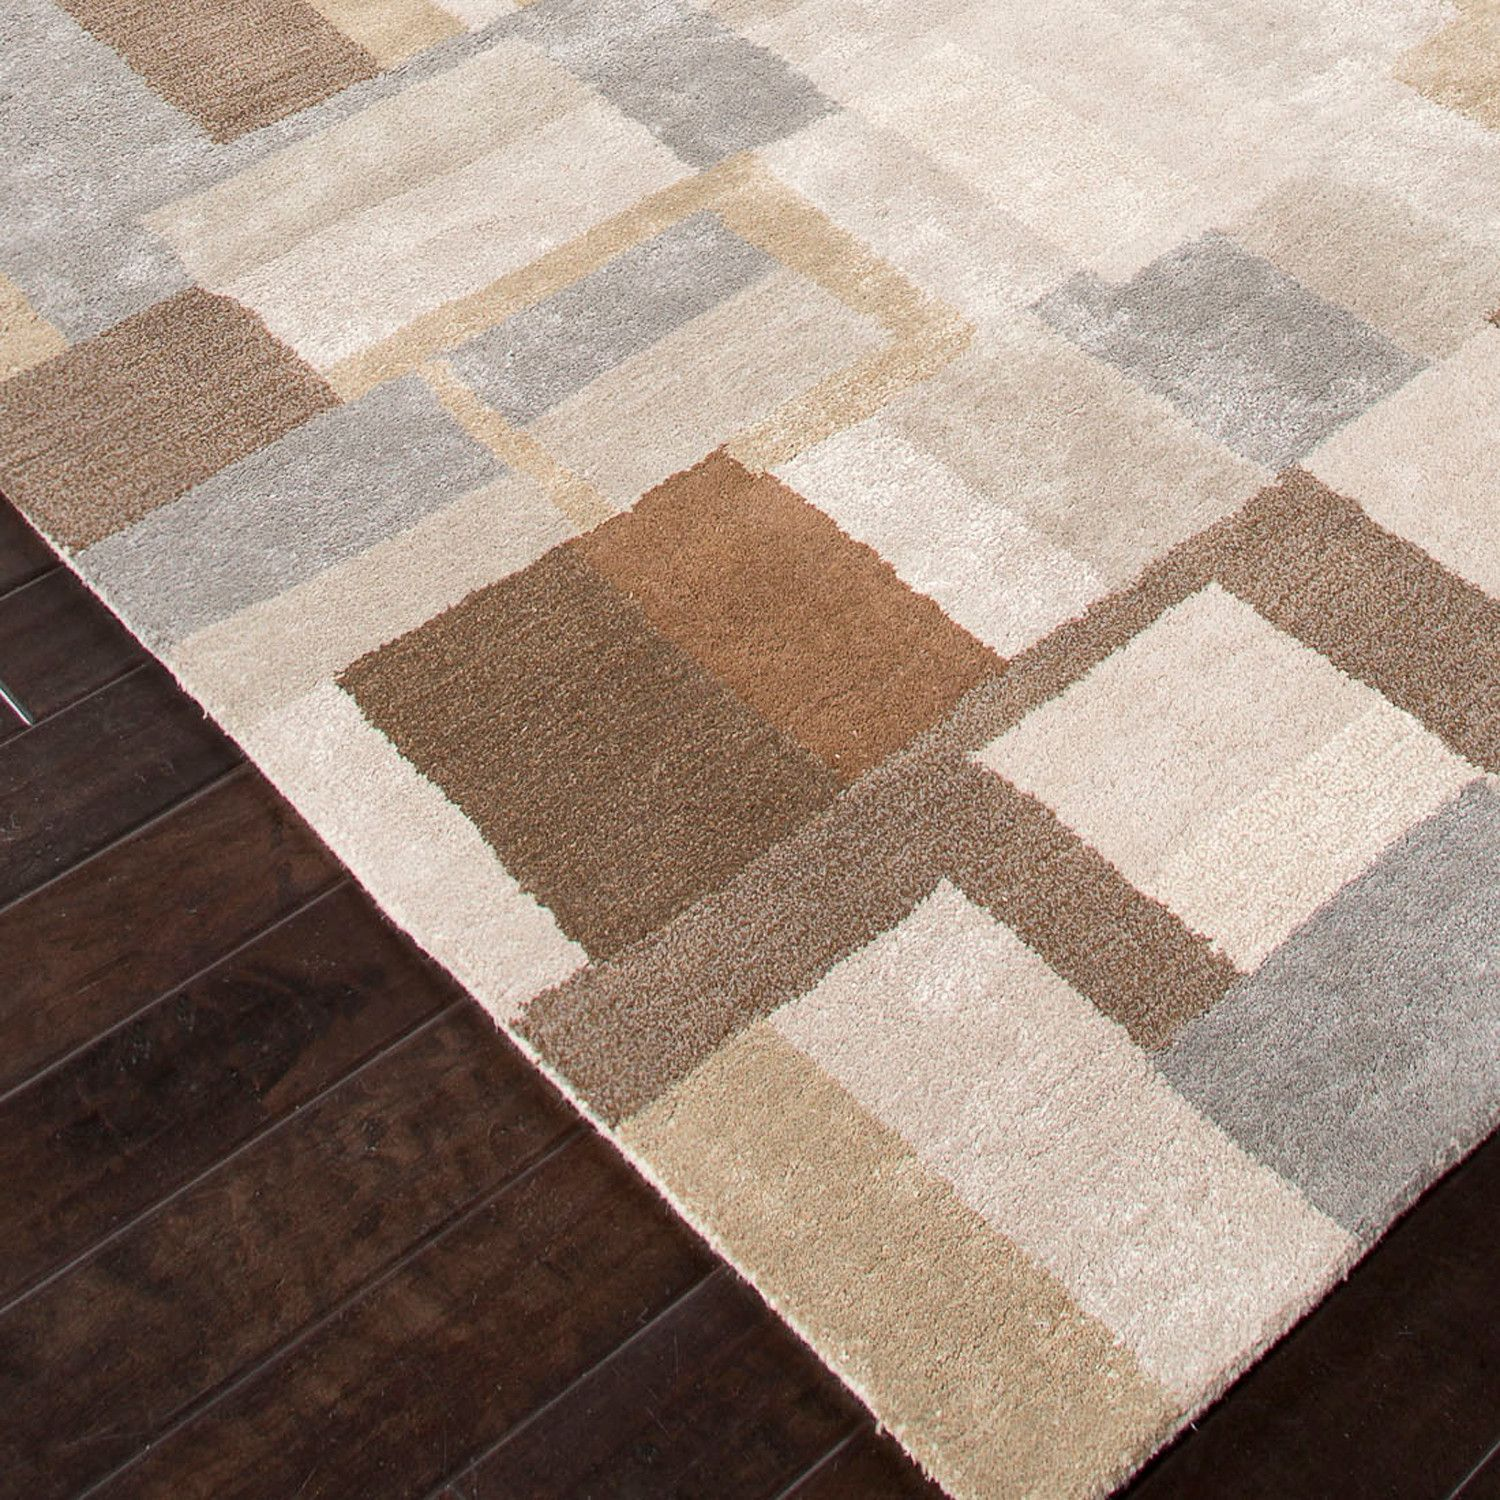 Best Image Result For Brown And Grey Area Rug In 2020 Cream 400 x 300